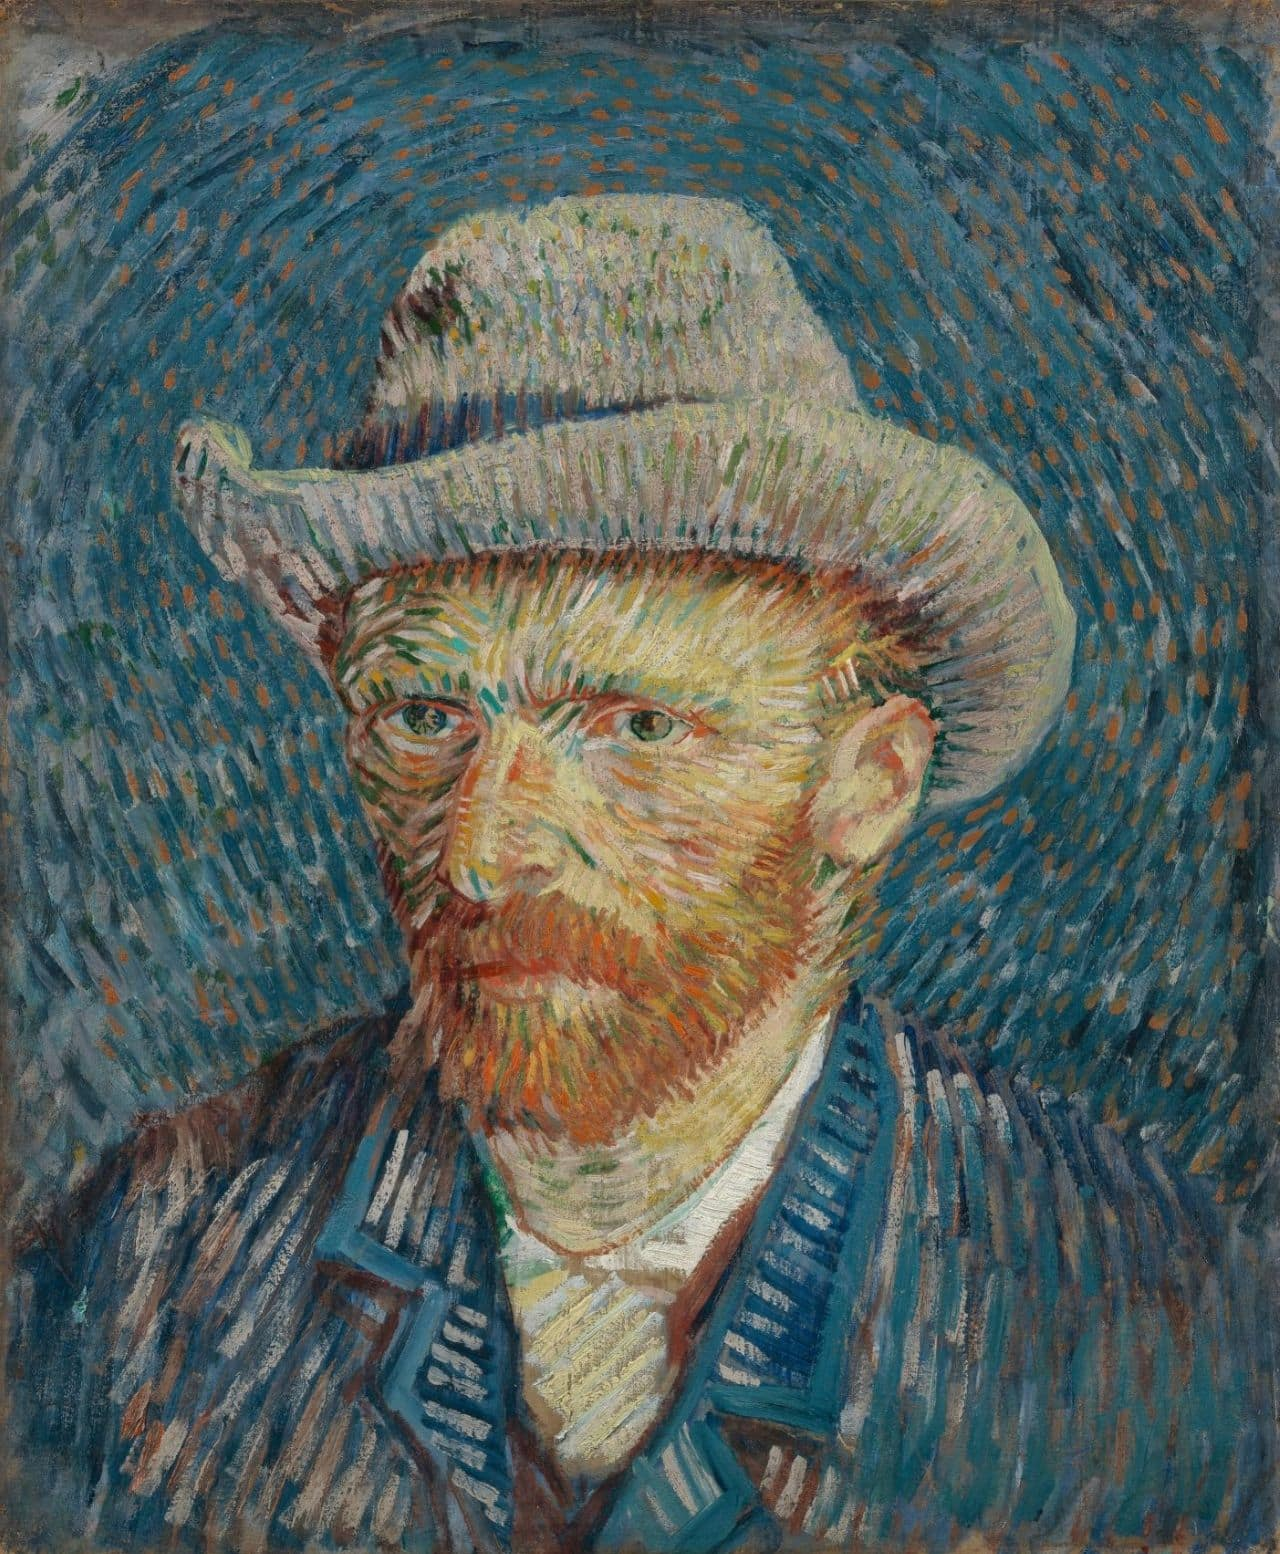 van gogh worldwide